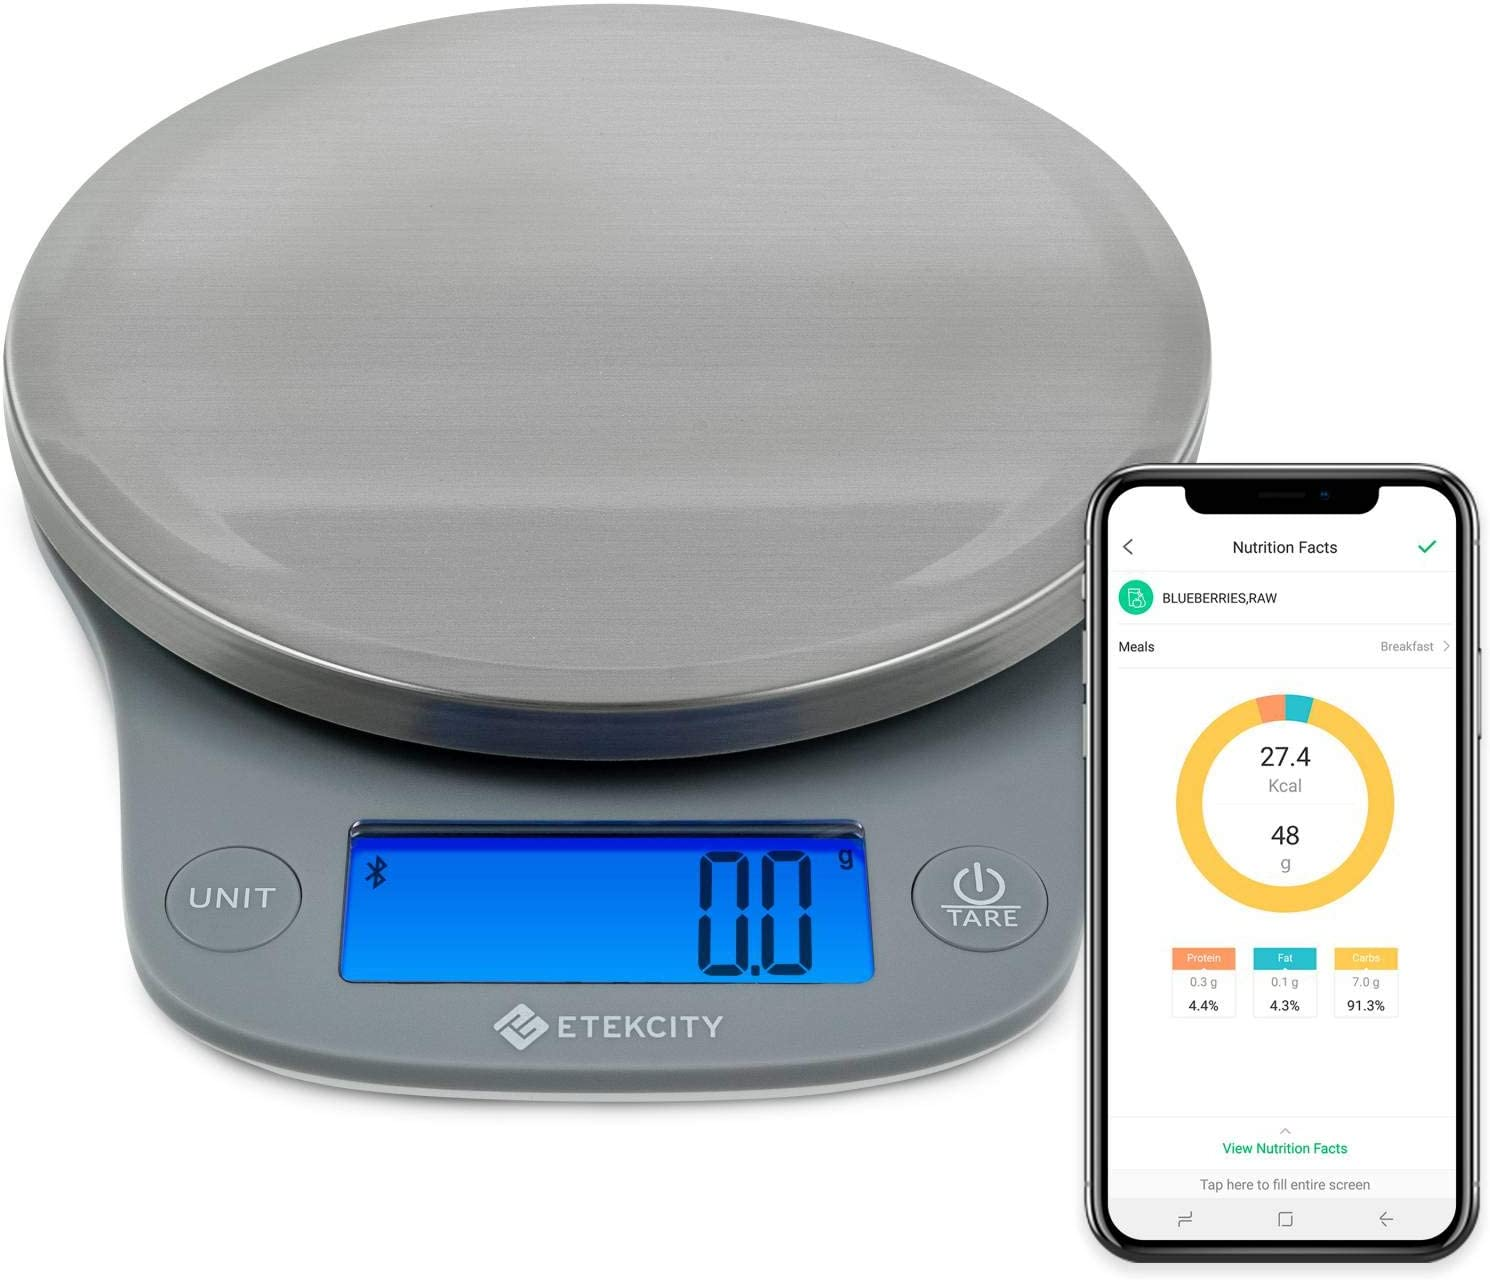 Etekcity 0.1g Smart Food Kitchen Scale, Gifts for Cooking, Baking, Meal Prep, Keto Diet and Weight Loss, Measuring in Grams and Ounces, Medium, 304 Stainless Steel